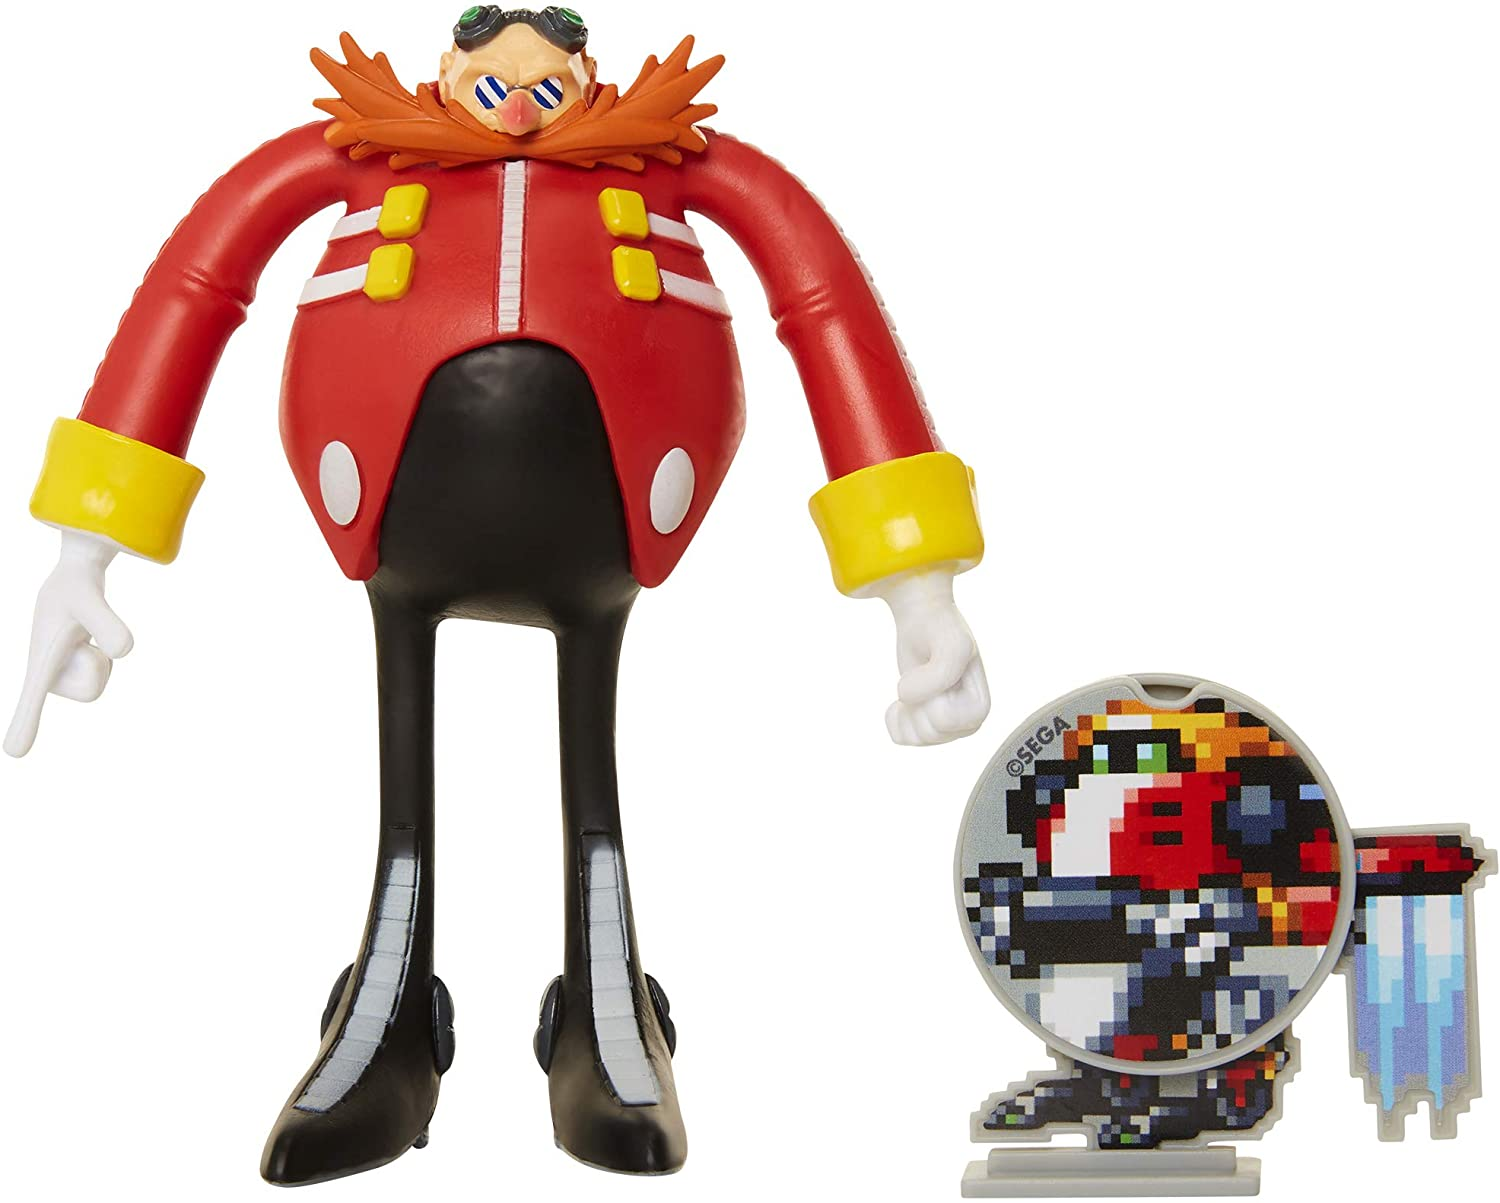 Amazon Com Sonic The Hedgehog Collectible Eggman 4 Bendable Flexible Action Figure With Bendable Limbs Spinable Friend Disk Accessory Perfect For Kids Collectors Alike For Ages 3 Toys Games